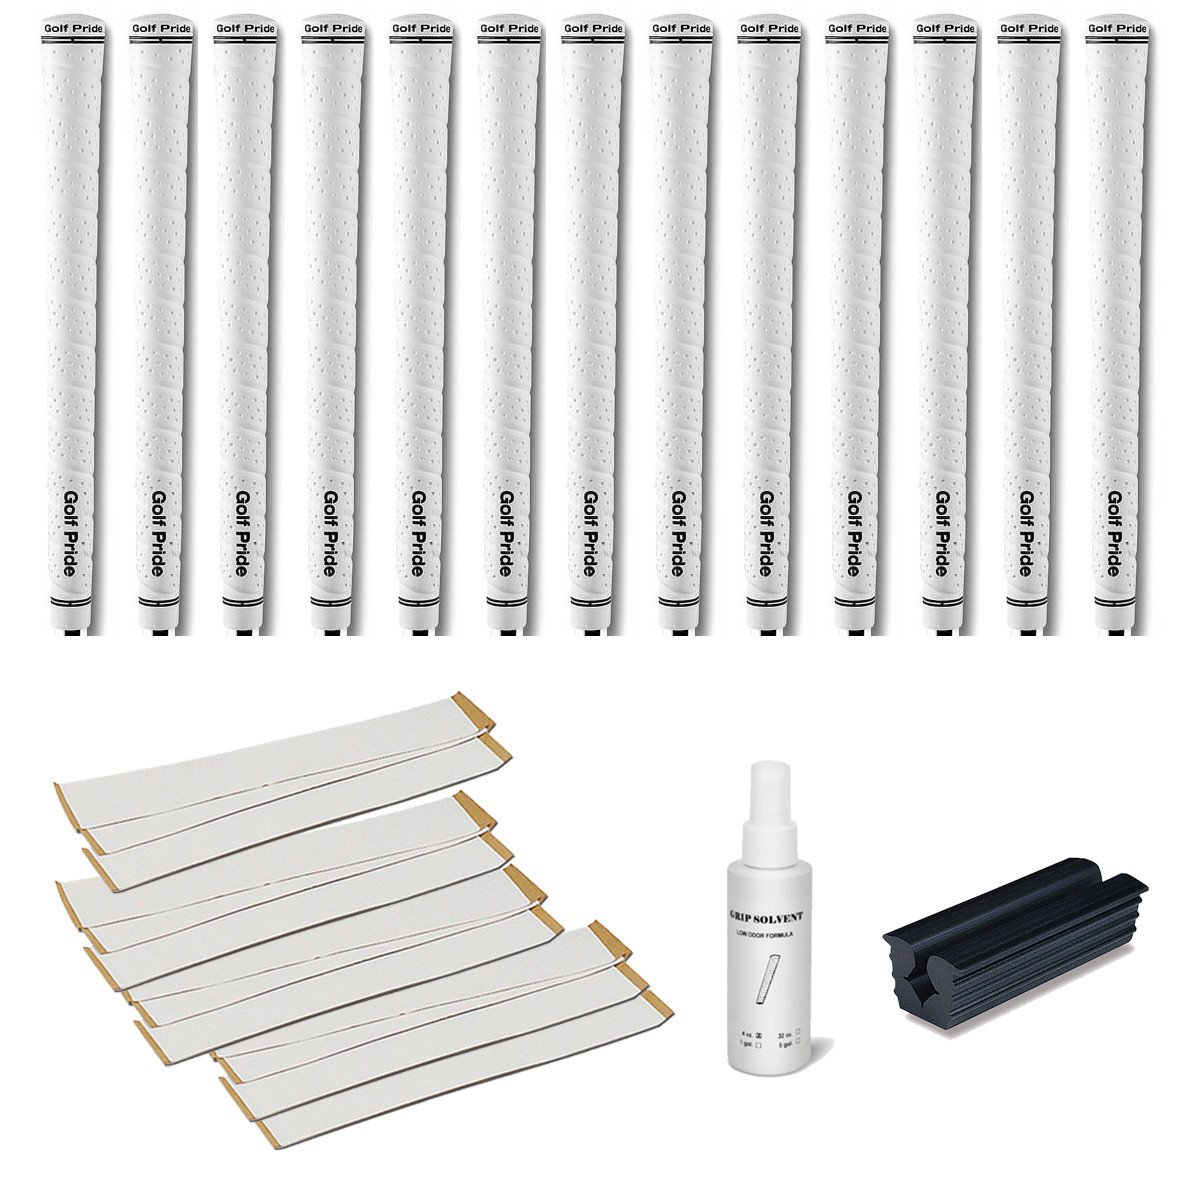 Golf Pride Tour Wrap 2G White - 13 pc Golf Grip Kit (with Tape, Solvent, Vise clamp)